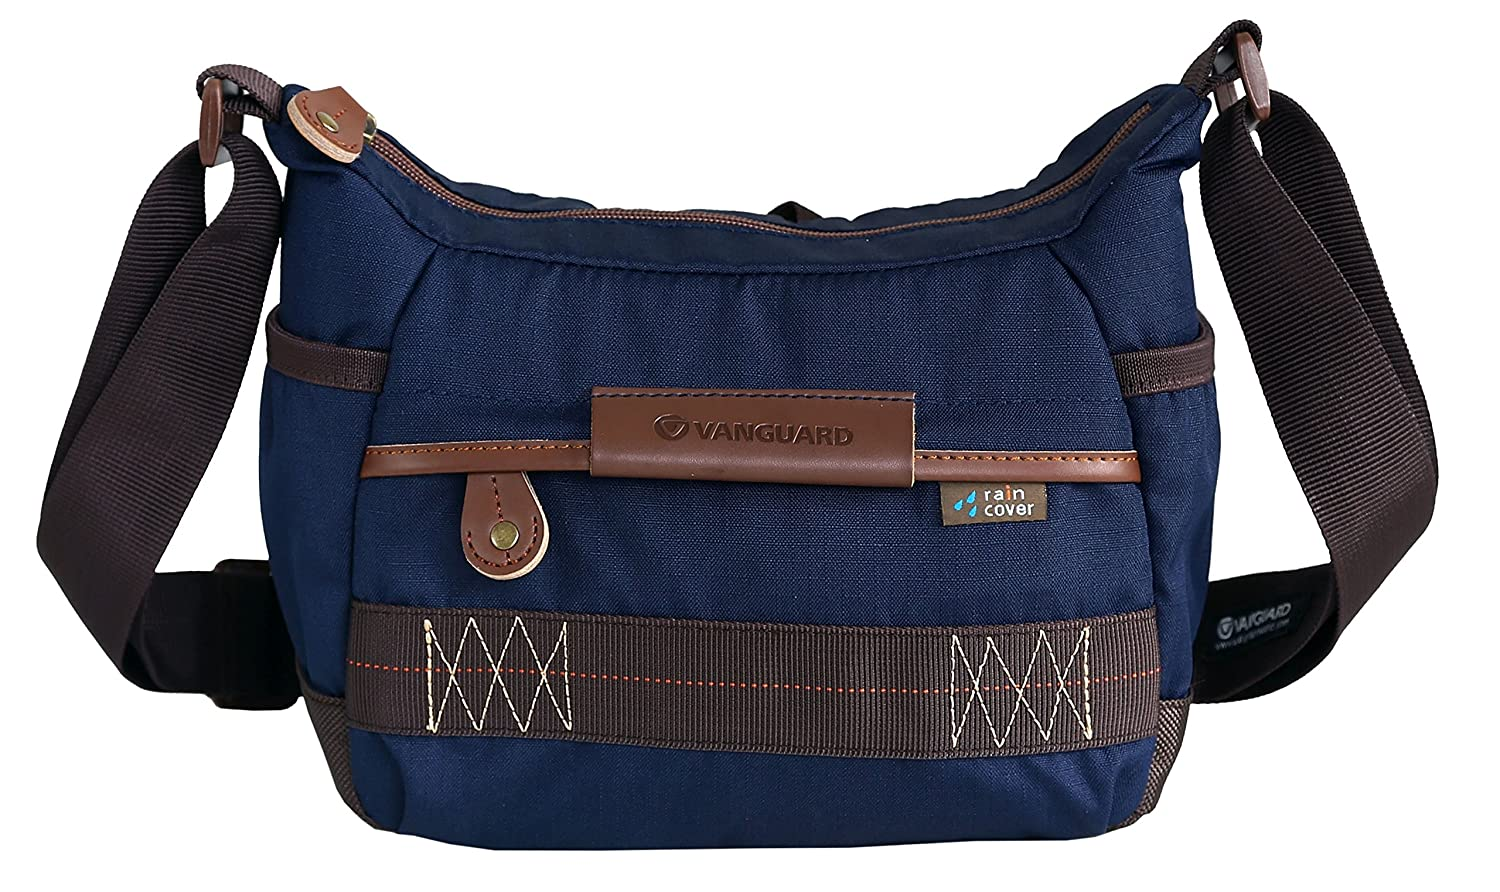 Vanguard Havana 21 Shoulder Bag Blue For Sony Nikon Canon Leather Denim Strap Kamera Mirrorless Dlsr Slr Fujifilm